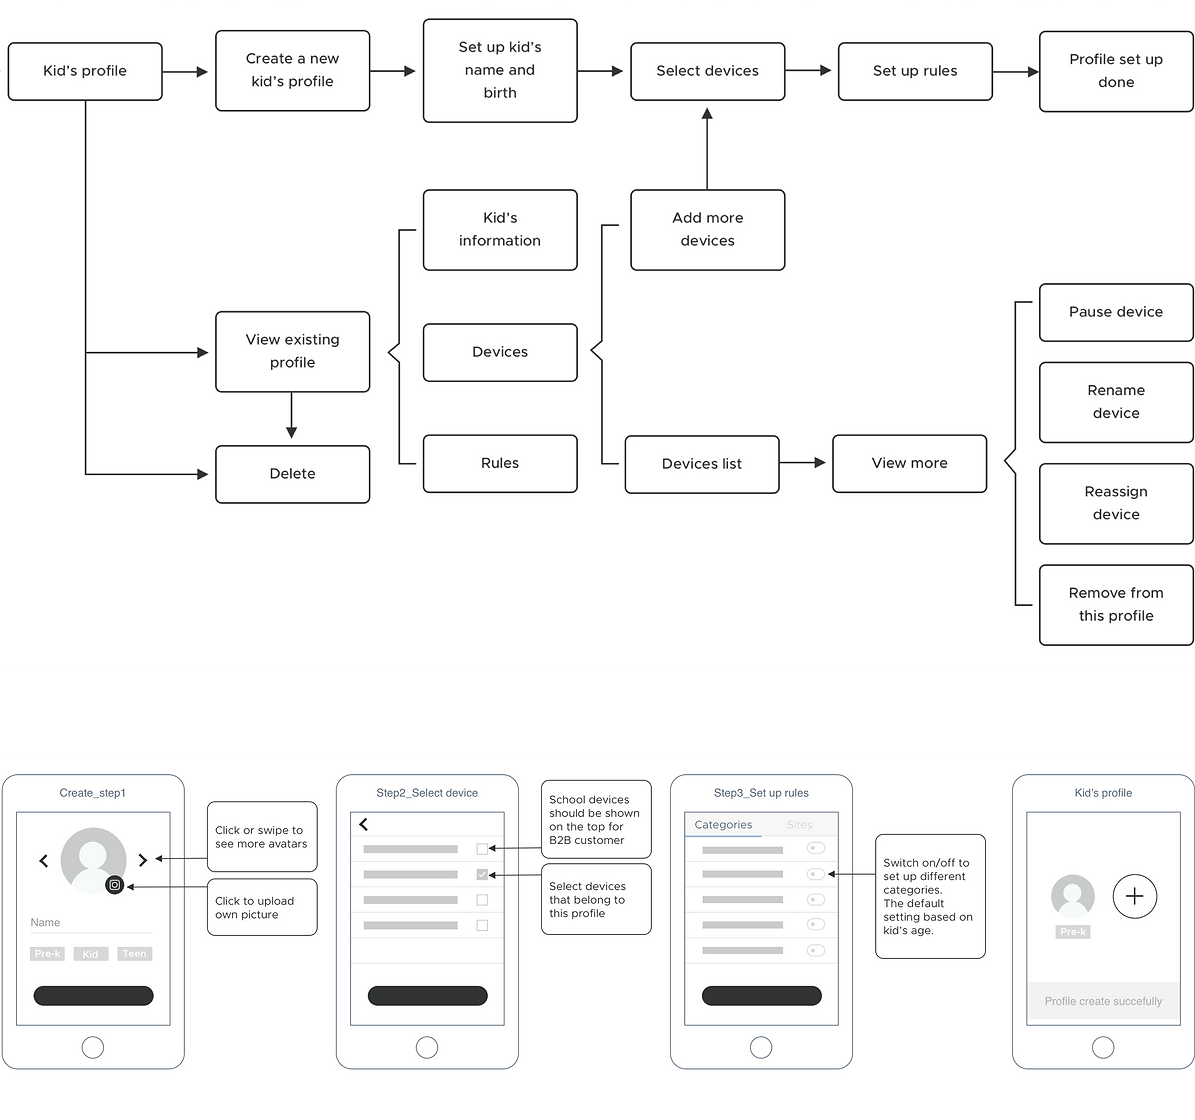 ProfileWireframe.png